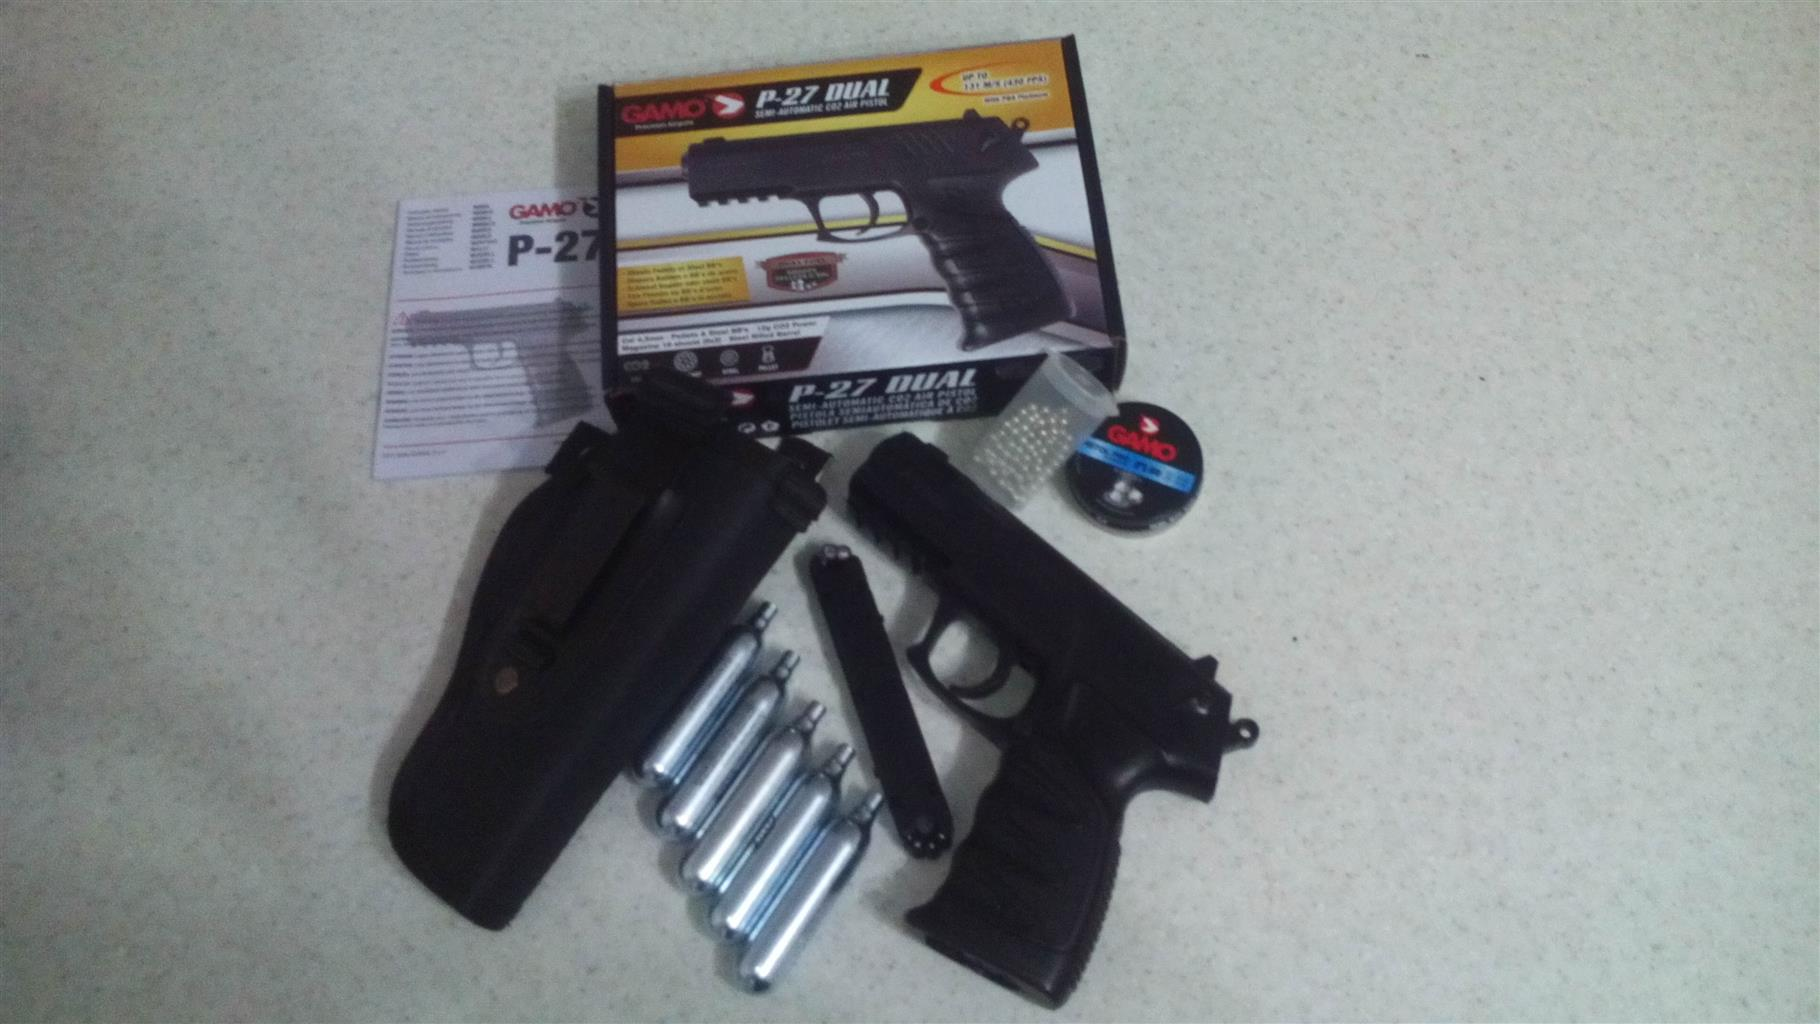 Gamo P27 Dual Semi Automatic CO2 Air Pistol